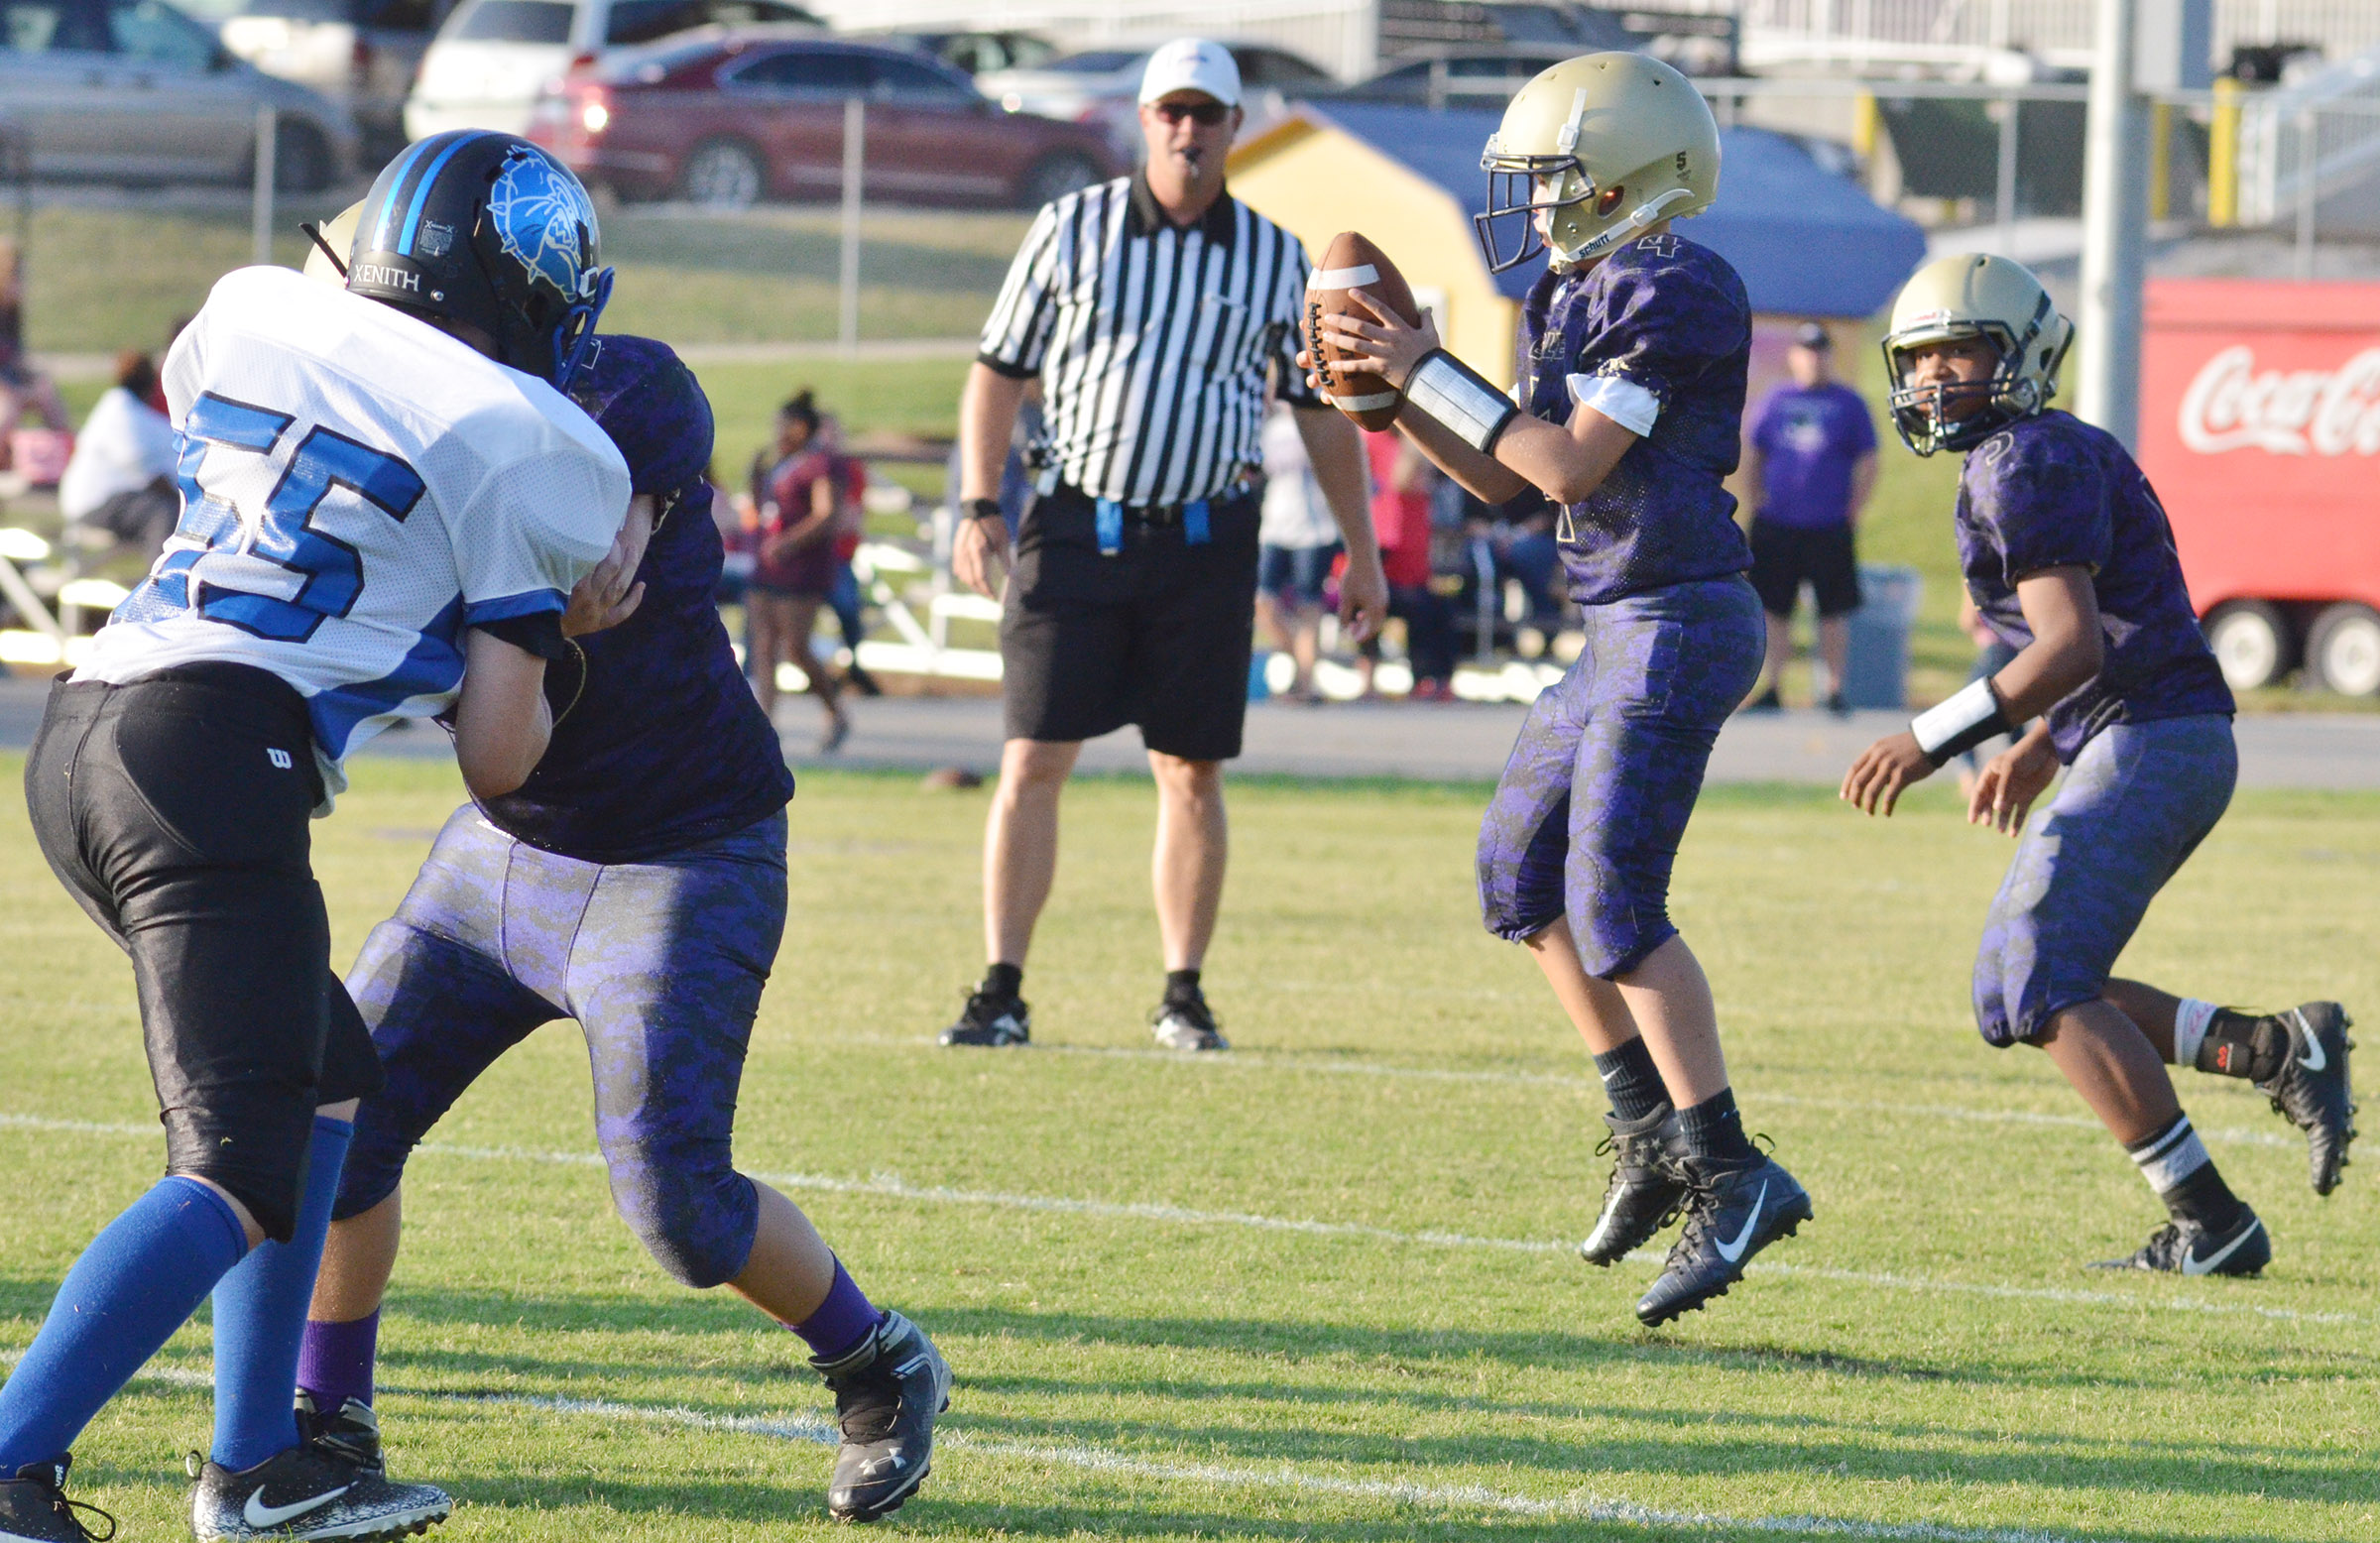 CMS seventh-grader Konner Forbis jumps to catch the ball.